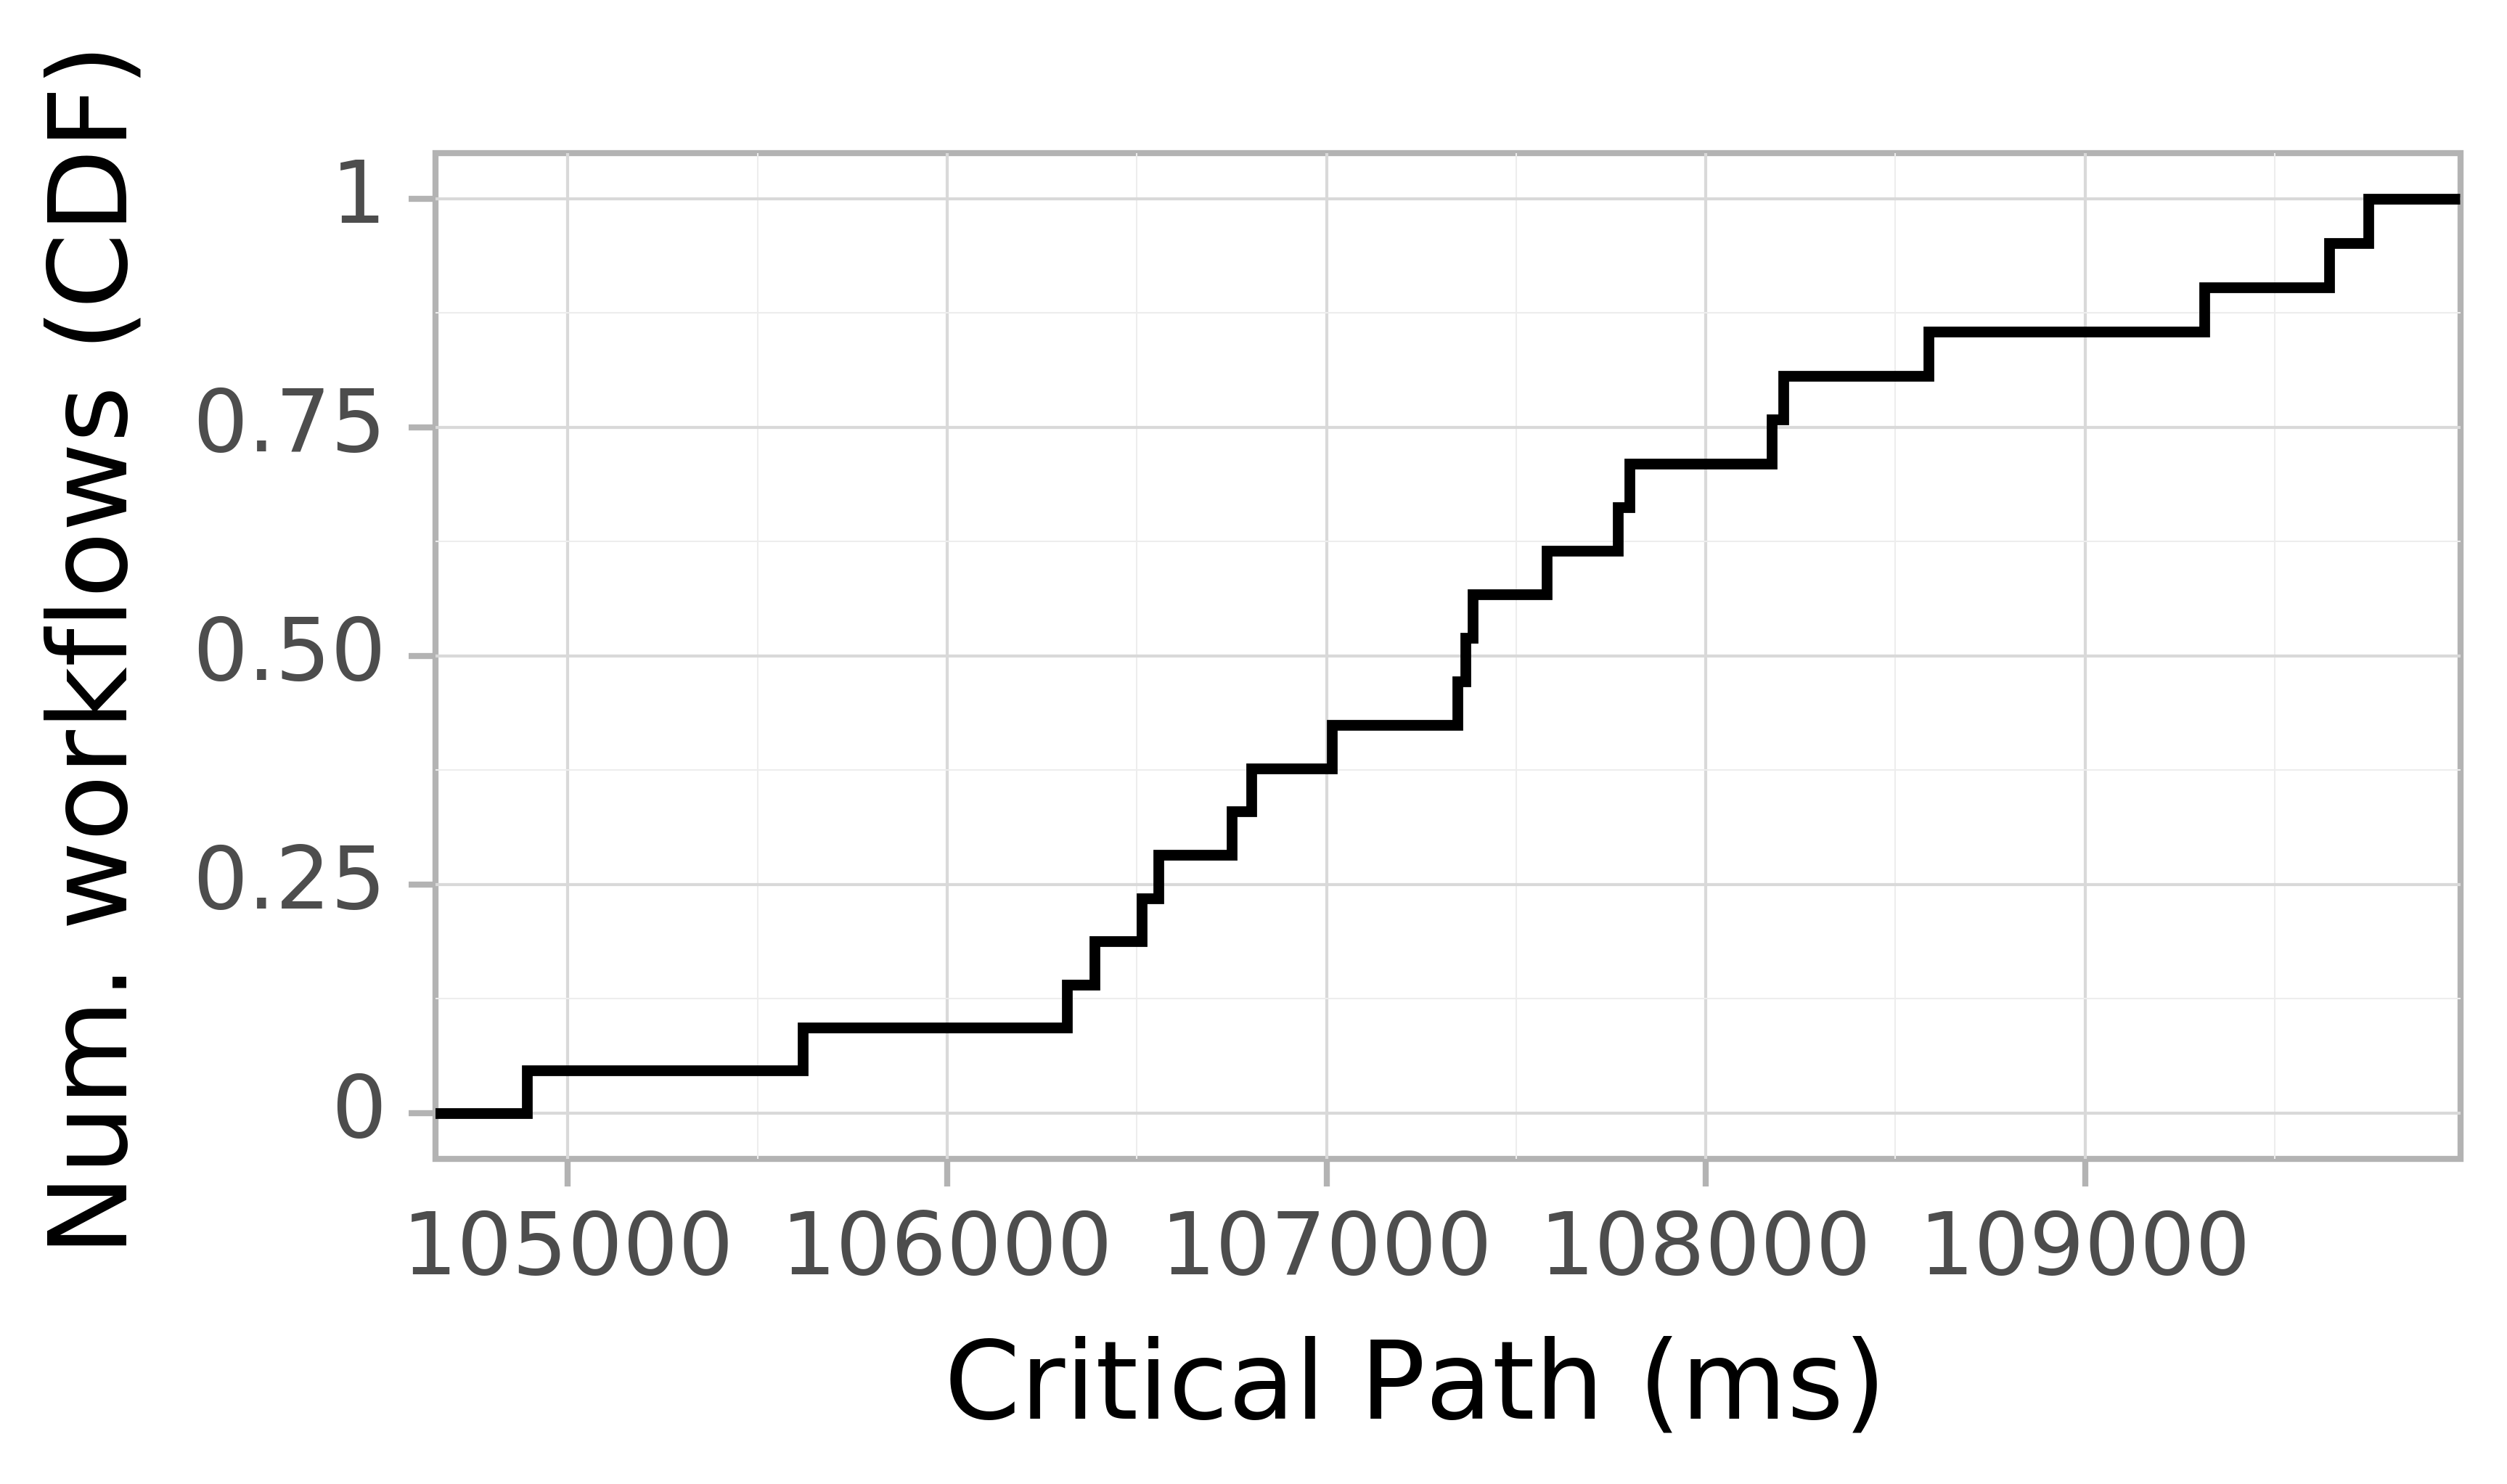 Job runtime CDF graph for the askalon-new_ee12 trace.